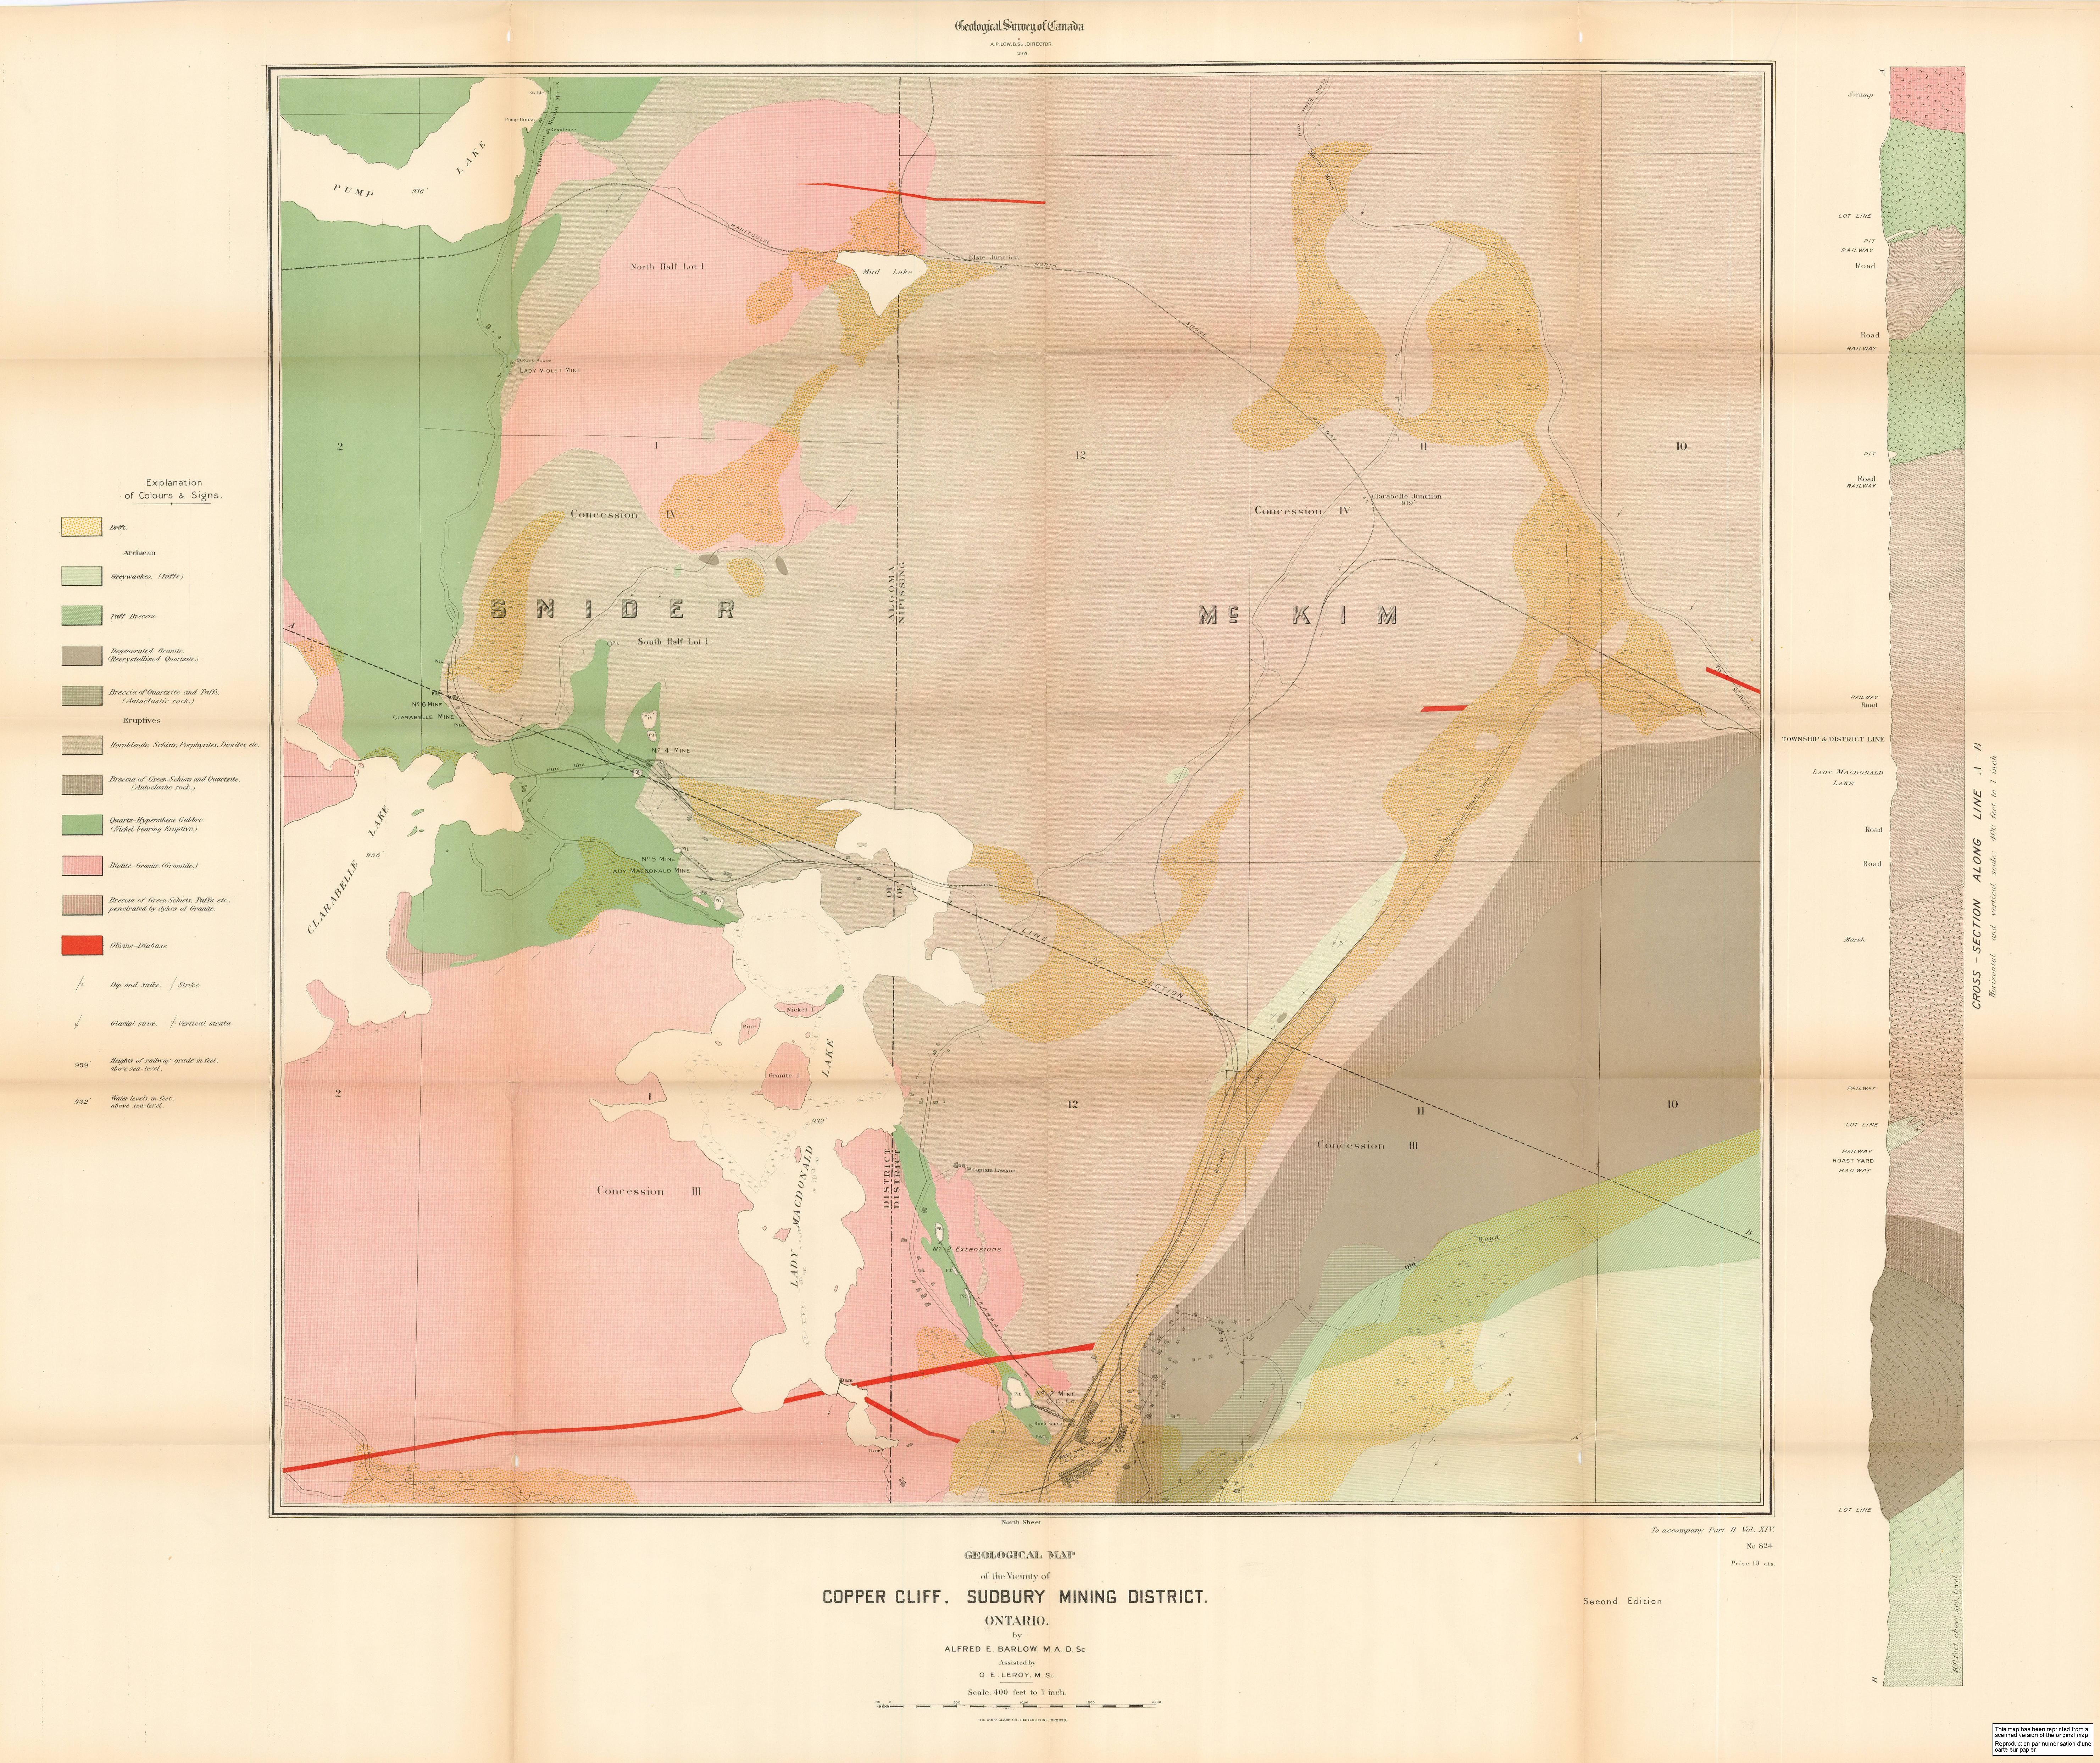 FileGeological map of the vicinity of Copper Cliff Sudbury mining